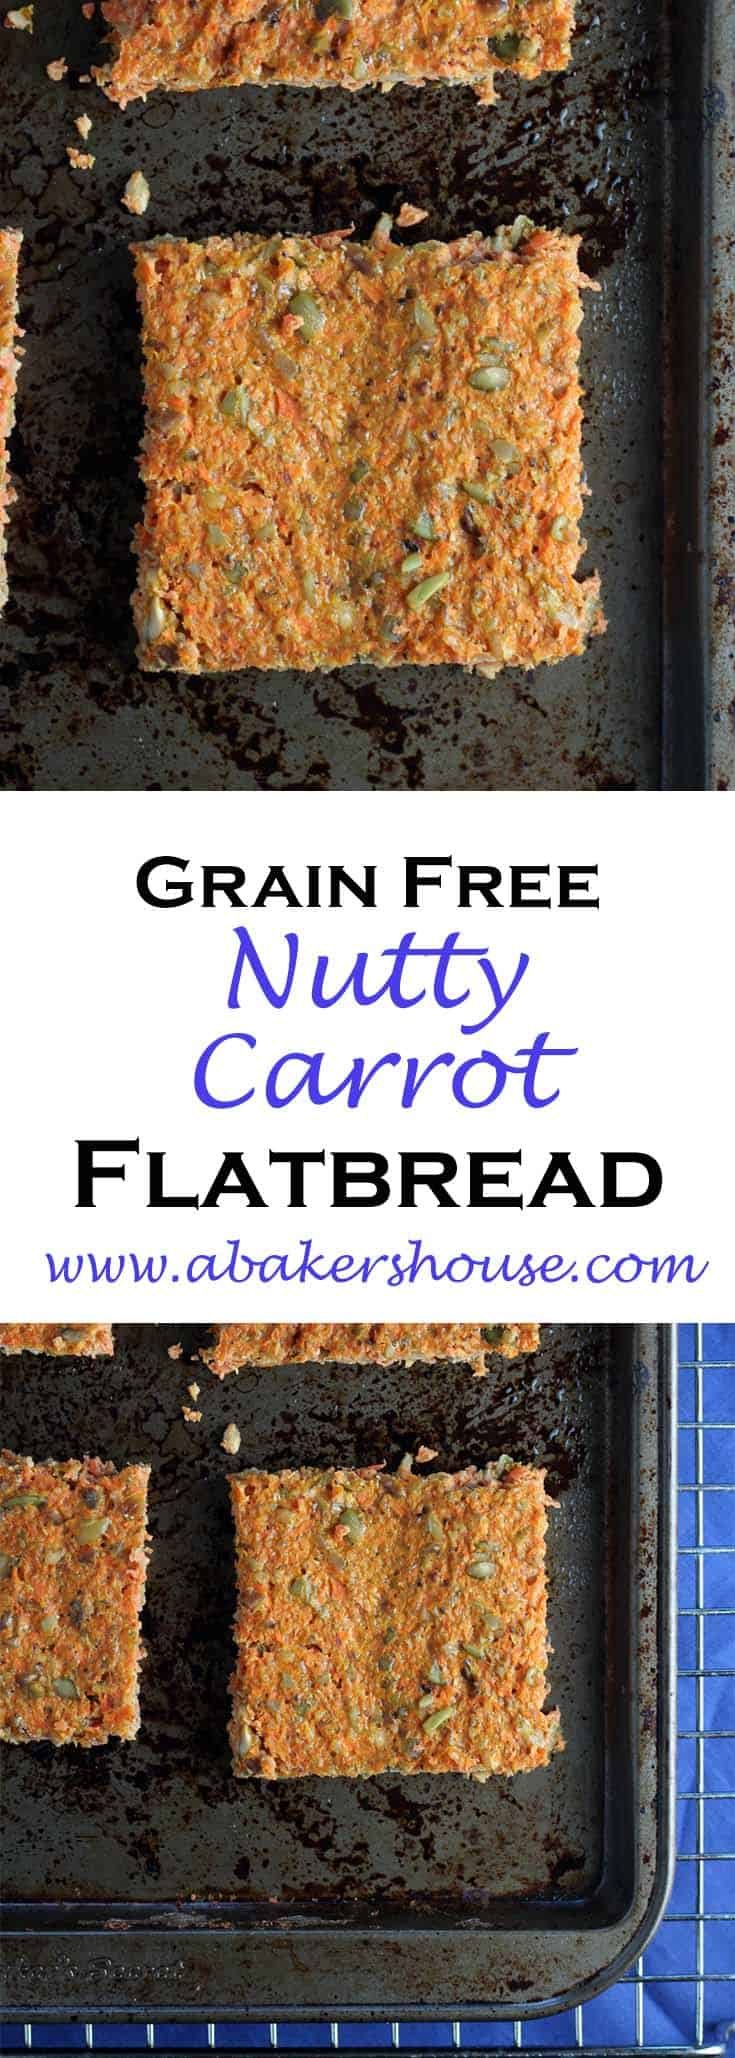 Grain Free Nutty Carrot Flatbread is a Cooking Light Recipe. Paleo bread and gluten free bread is easy to make at home. #abakershouse #homemadebread #paleo #glutenfree